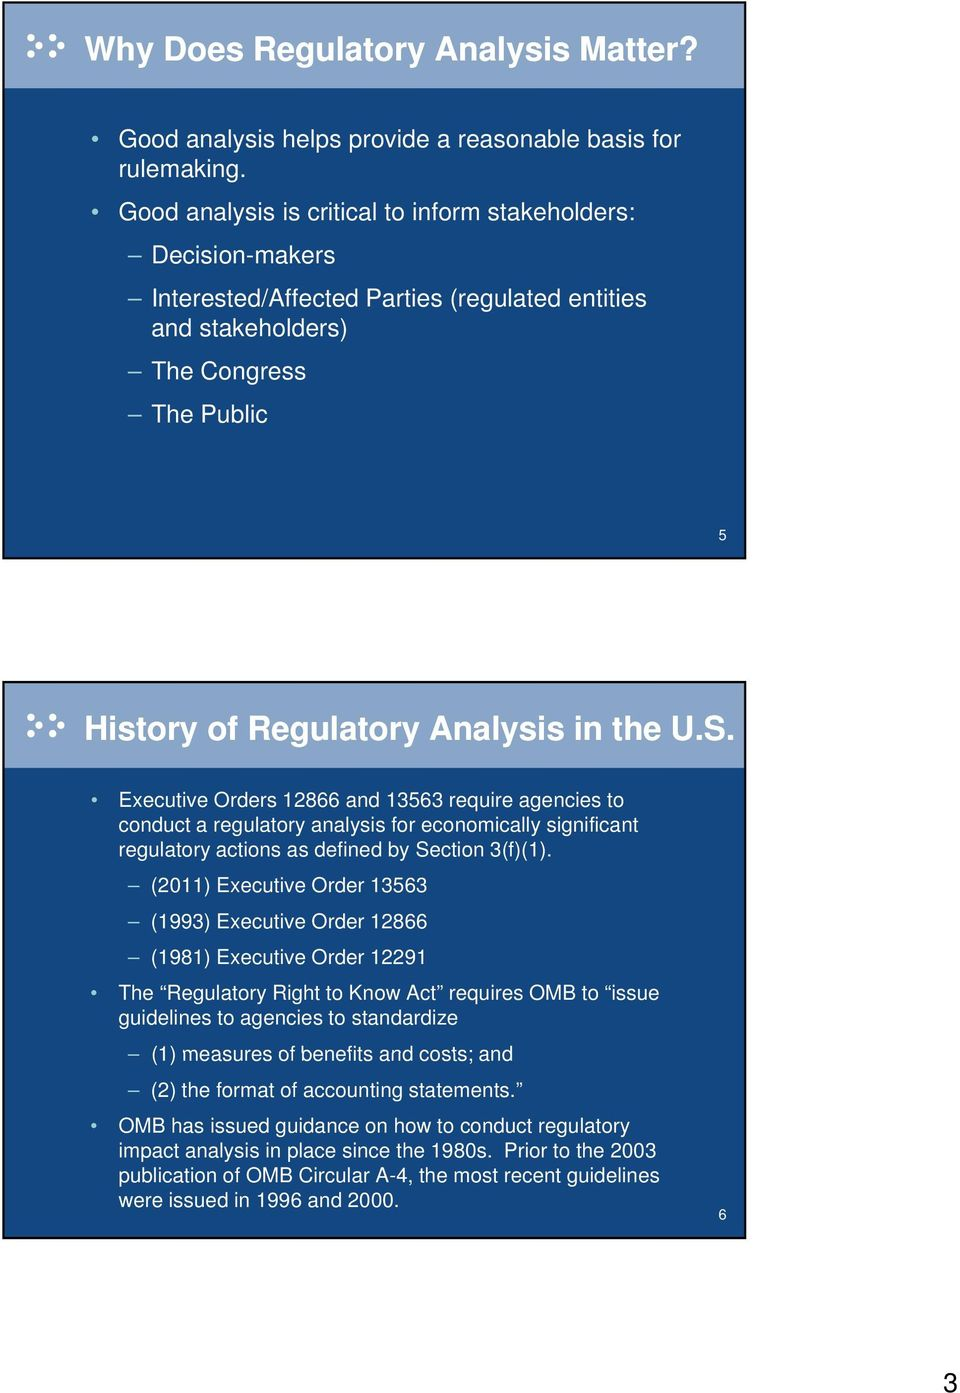 Executive Orders 12866 and 13563 require agencies to conduct a regulatory analysis for economically significant regulatory actions as defined by Section 3(f)(1).